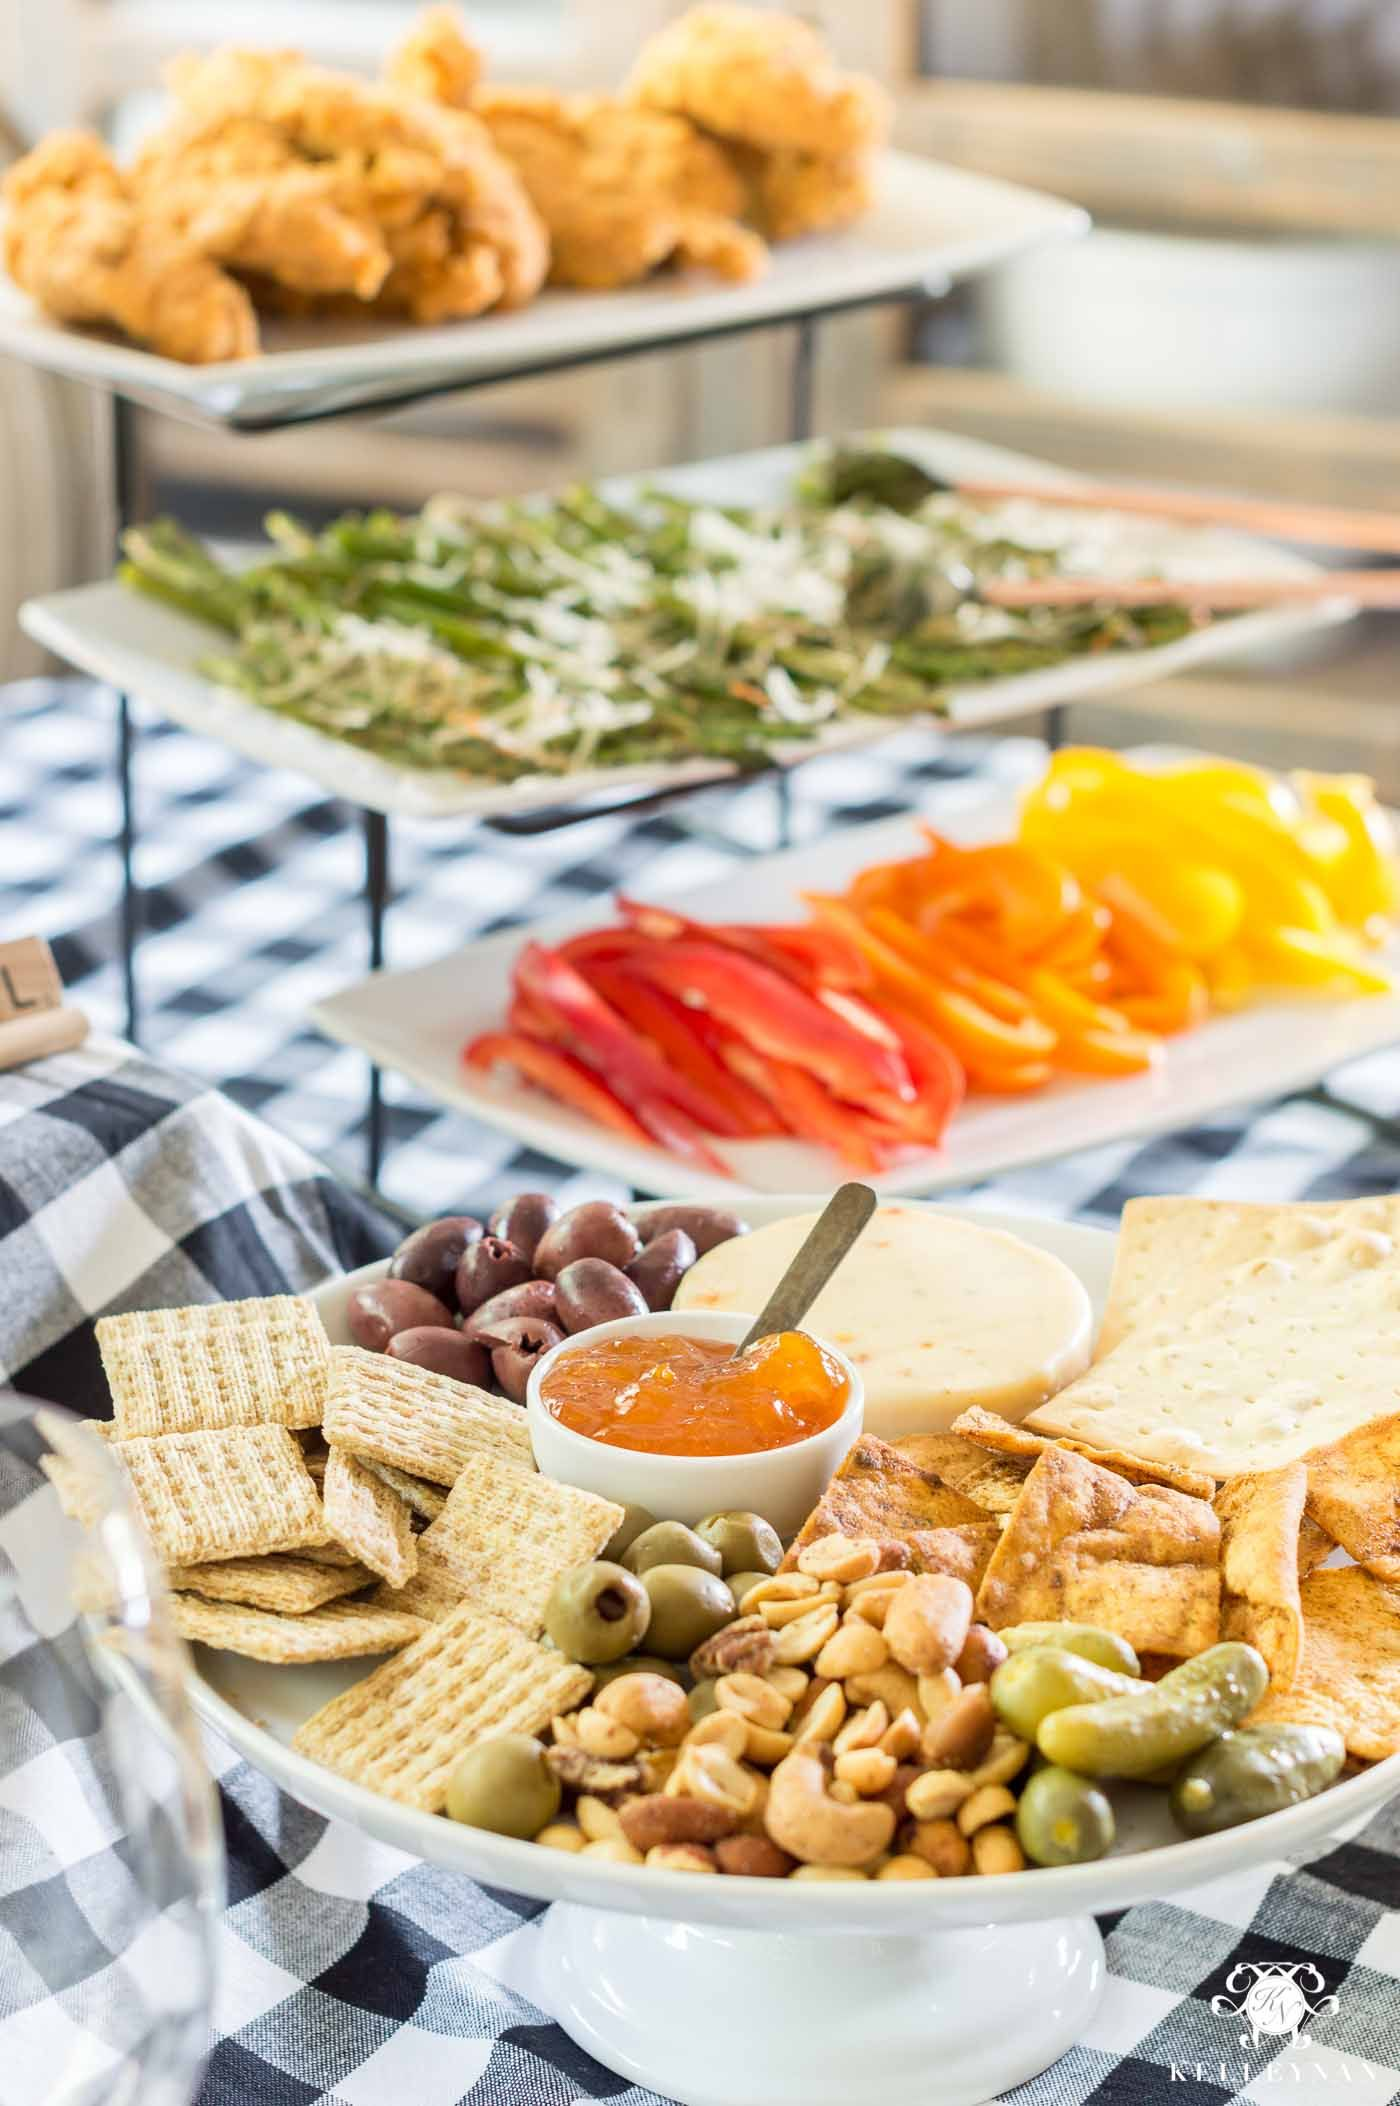 appetizer meal ideas for a casual game night #partyfood #appetizers